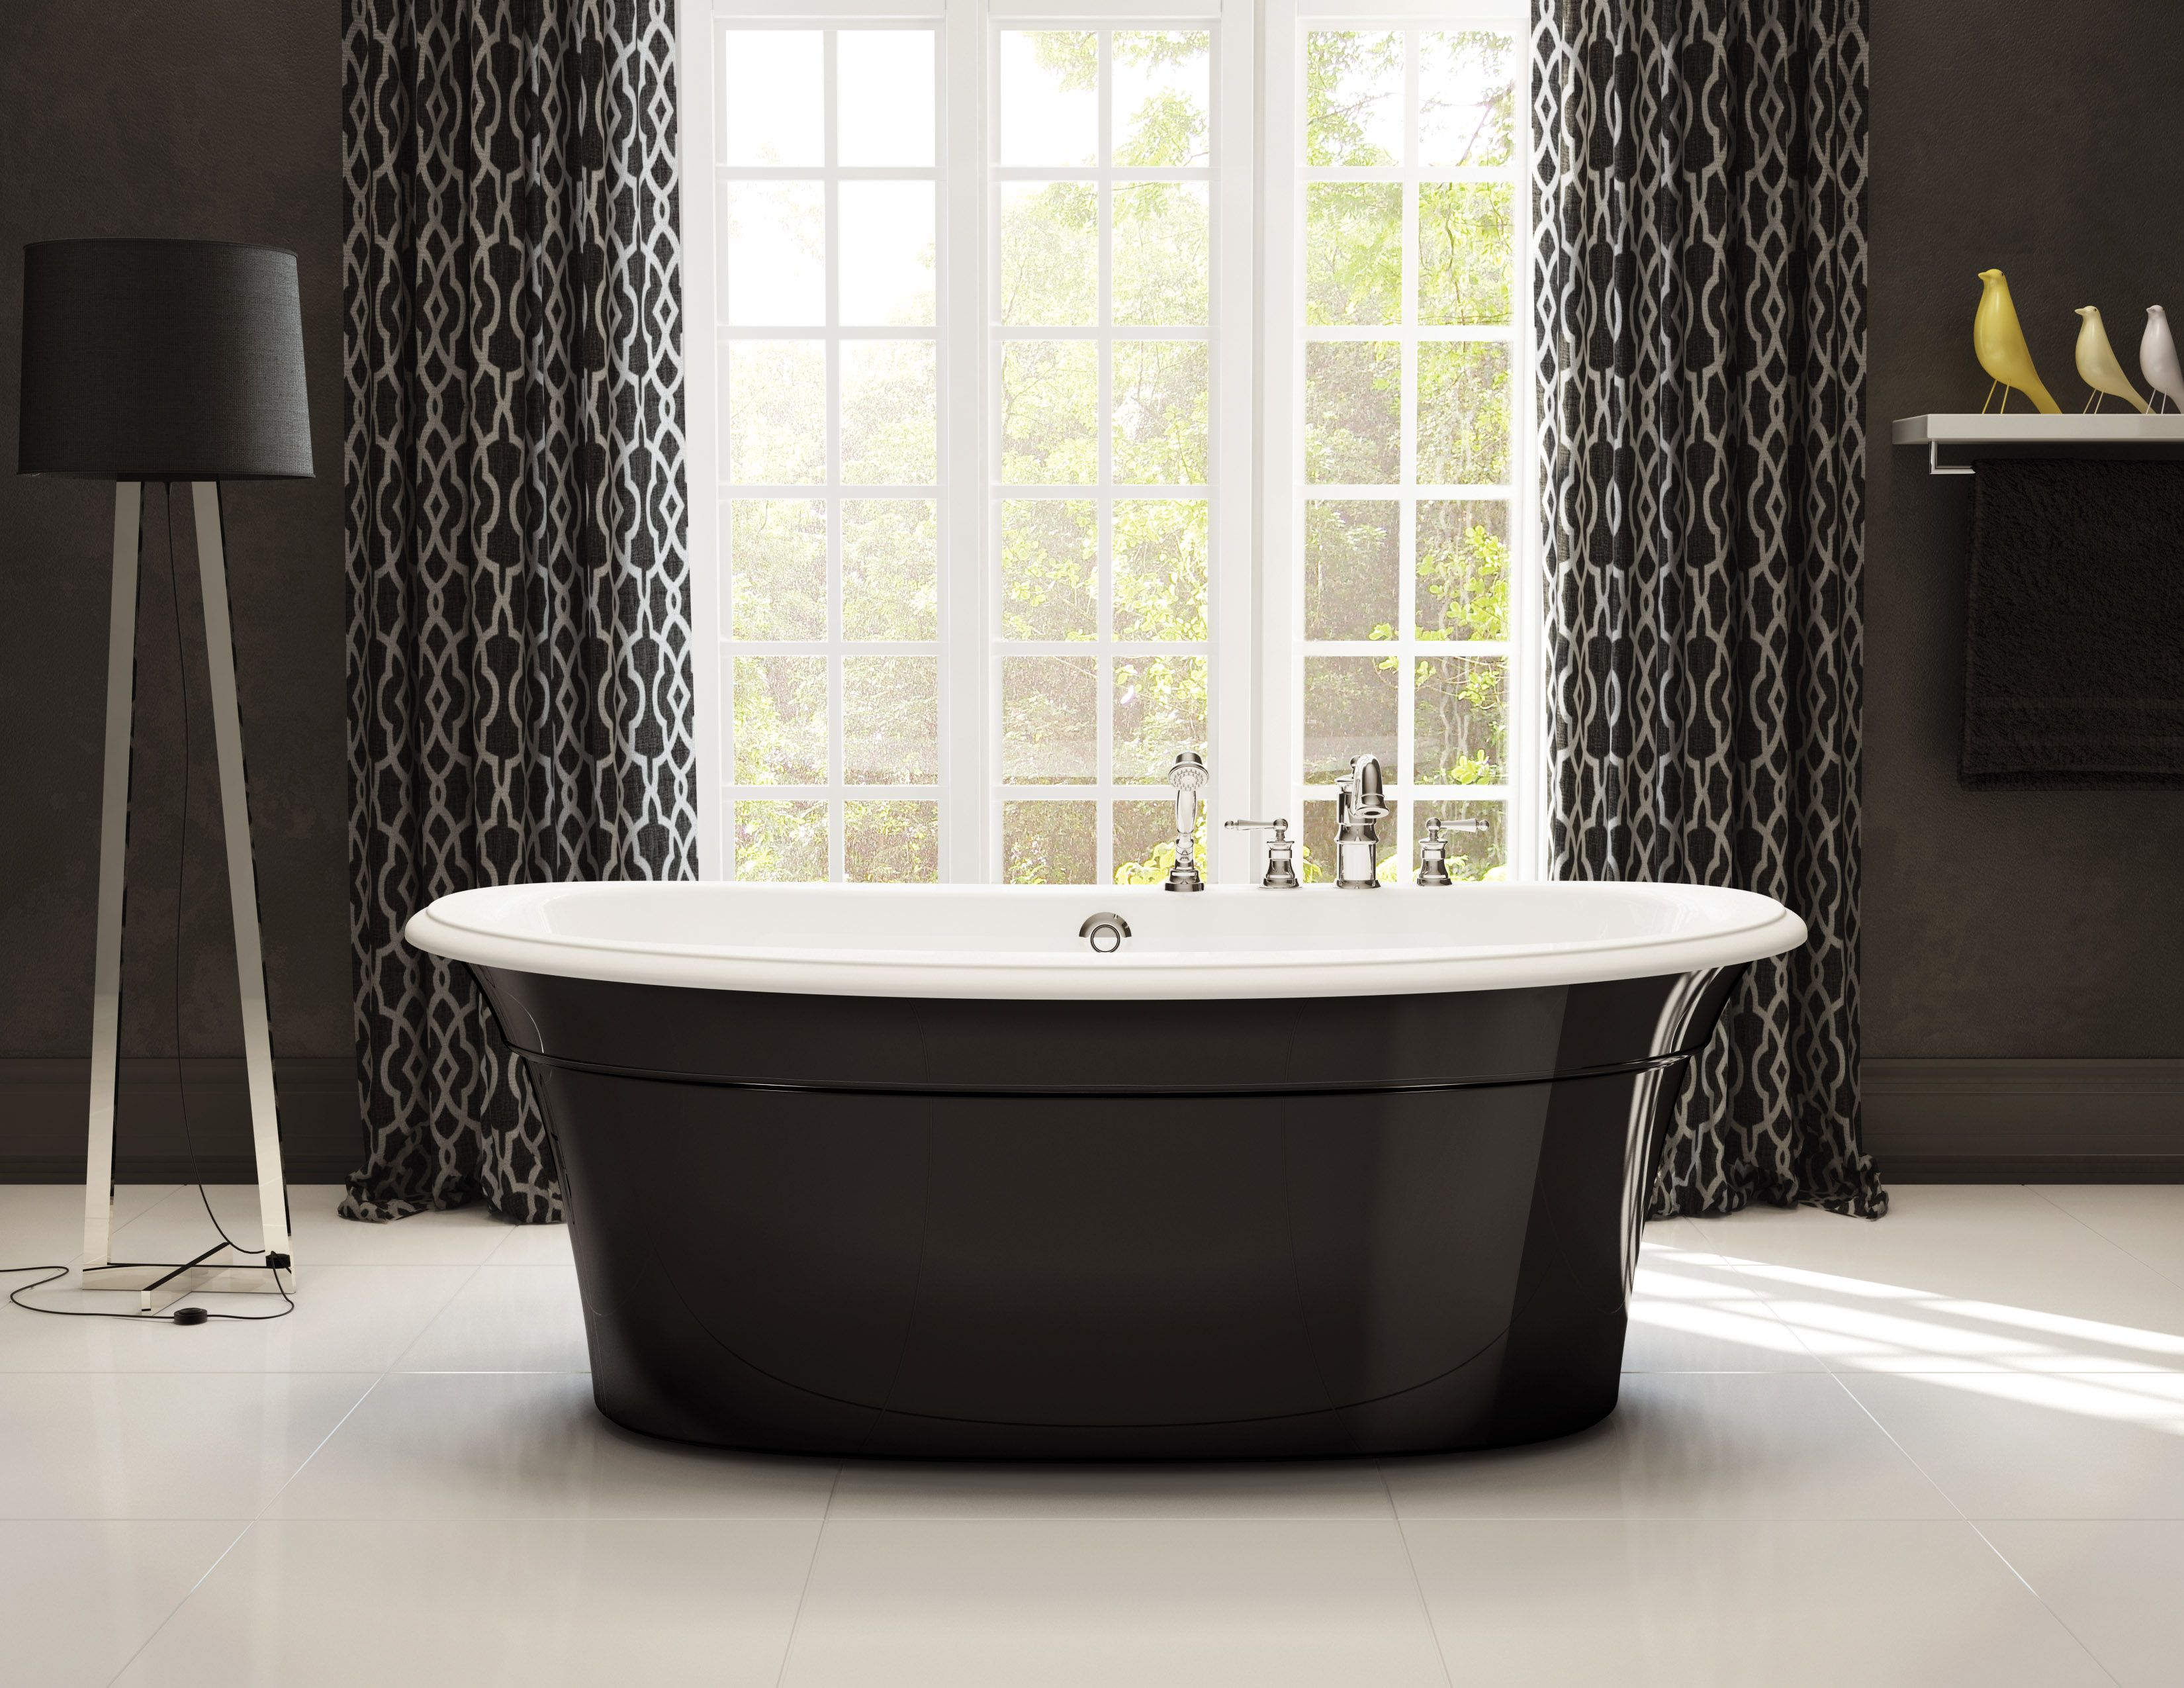 Maax Ella Black Maax Freestandingtub Blacktub With Images